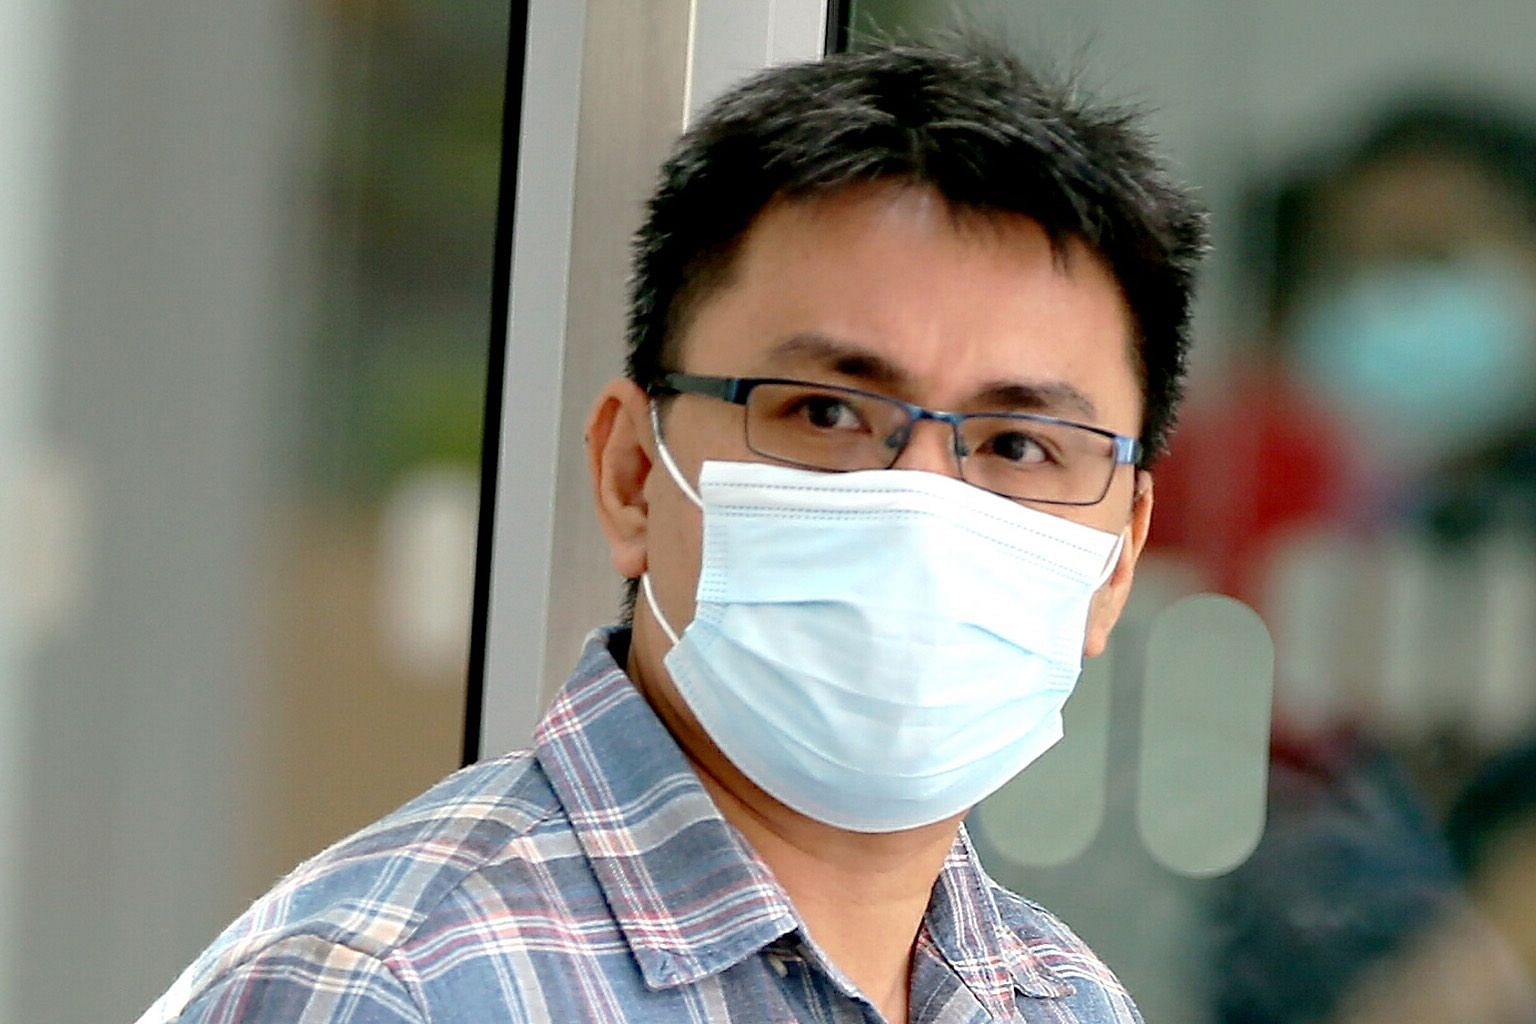 Shaun Pang Tong Heng, who was fined $9,000, had three foreign workers from integrated mechanical engineering service provider Ad-Meth Mech Field confined in a 3.4m-by-4.3m room, which is slightly larger than a bedroom in an HDB flat.